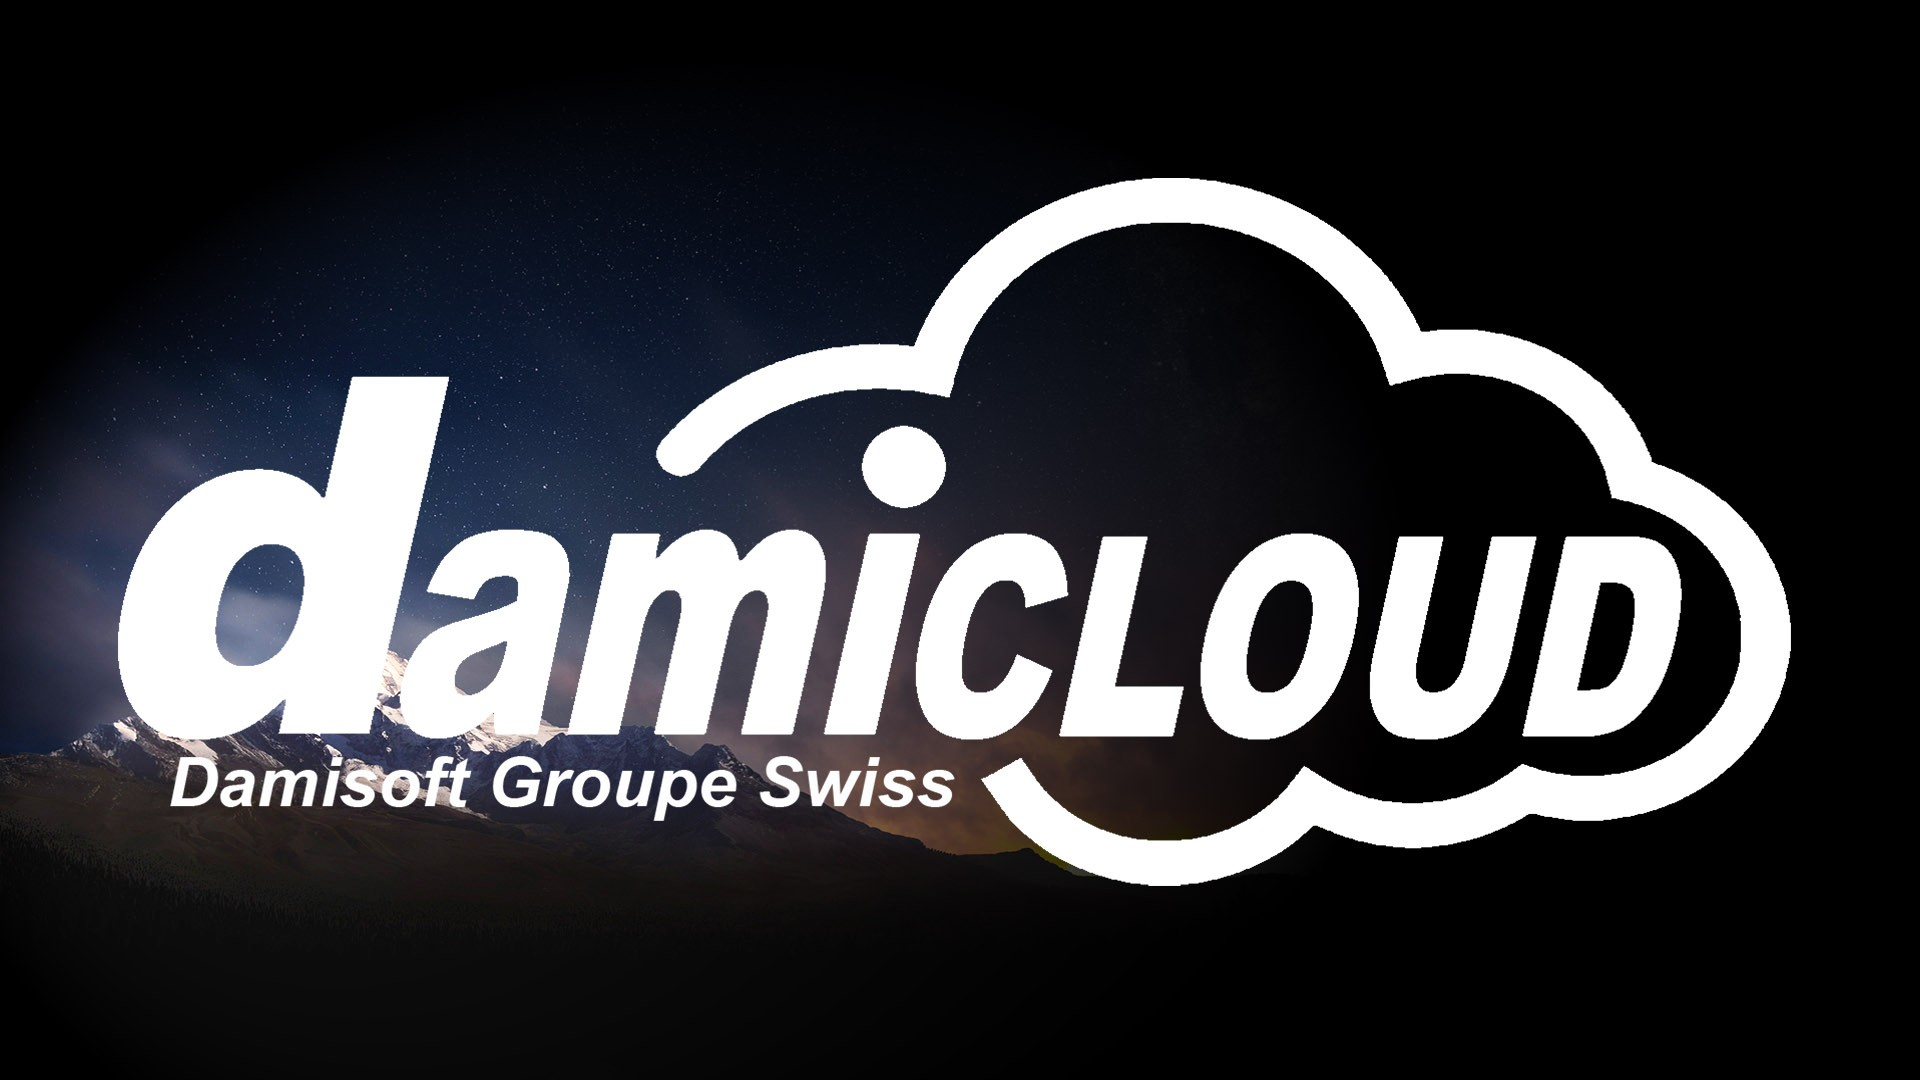 damicloud logo damisoft groupe bild wallpaper hd jpg